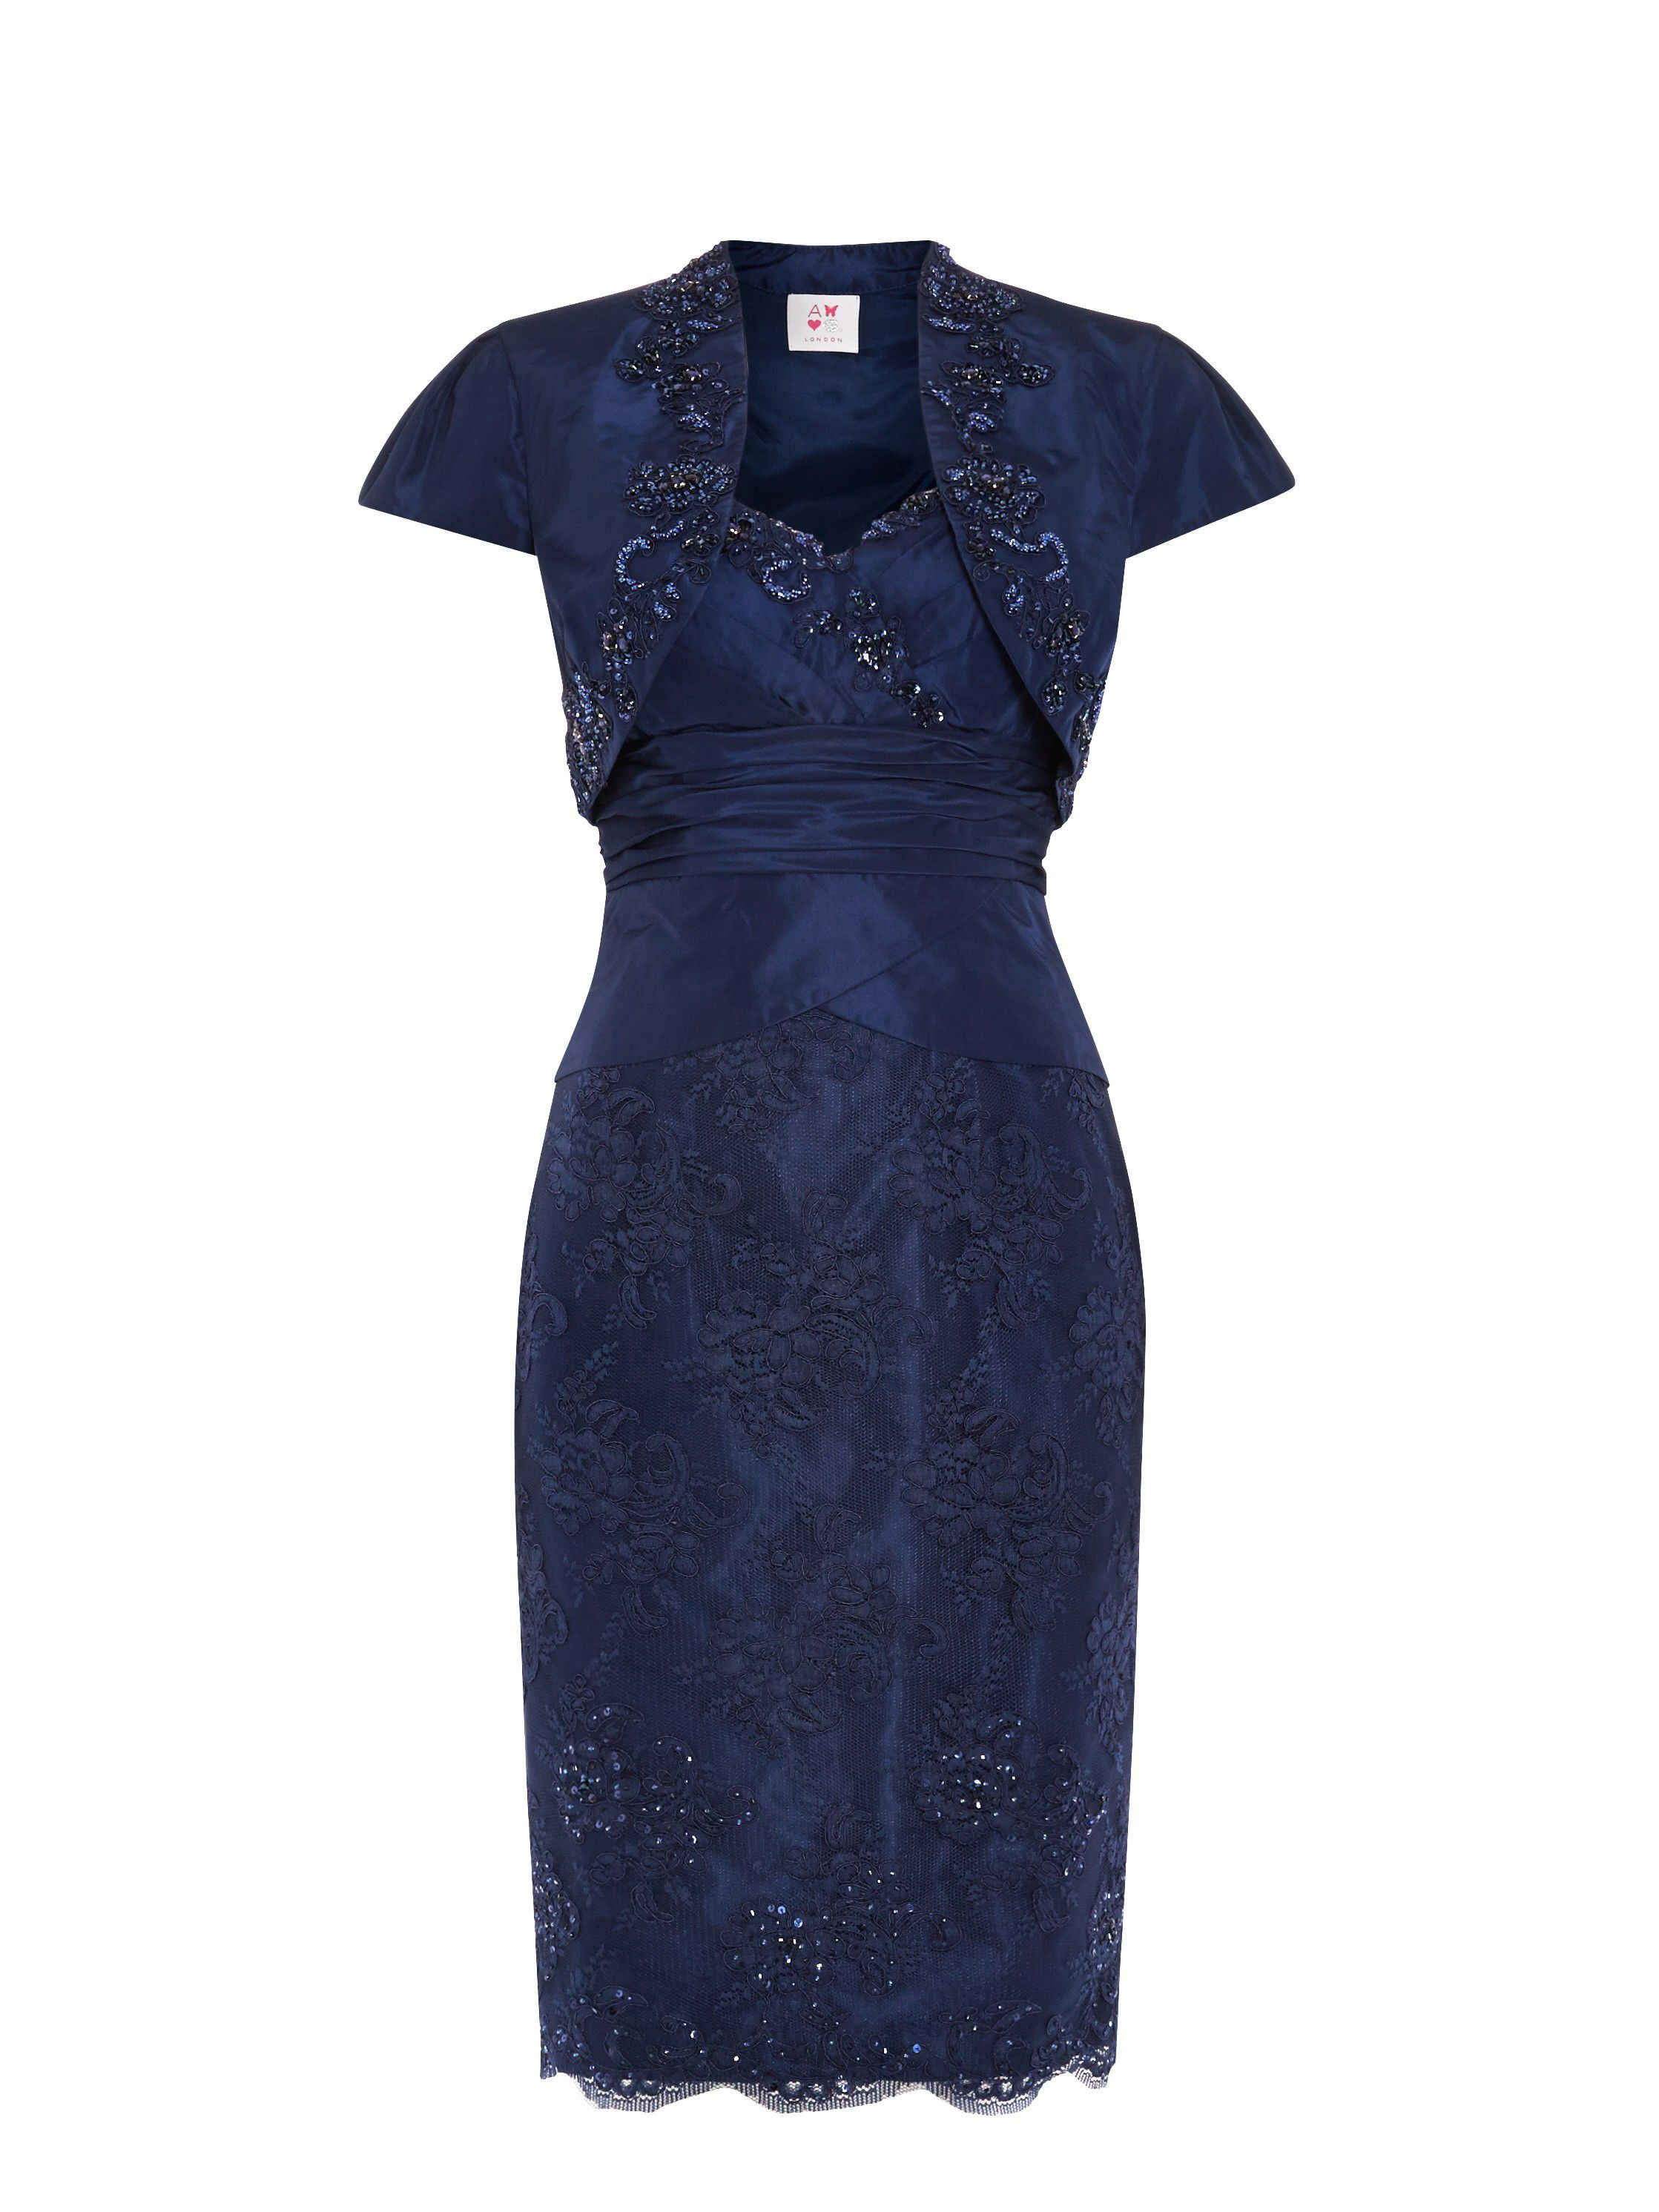 ANOUSHKA G Embellished corded lace dress & jacket, Blue